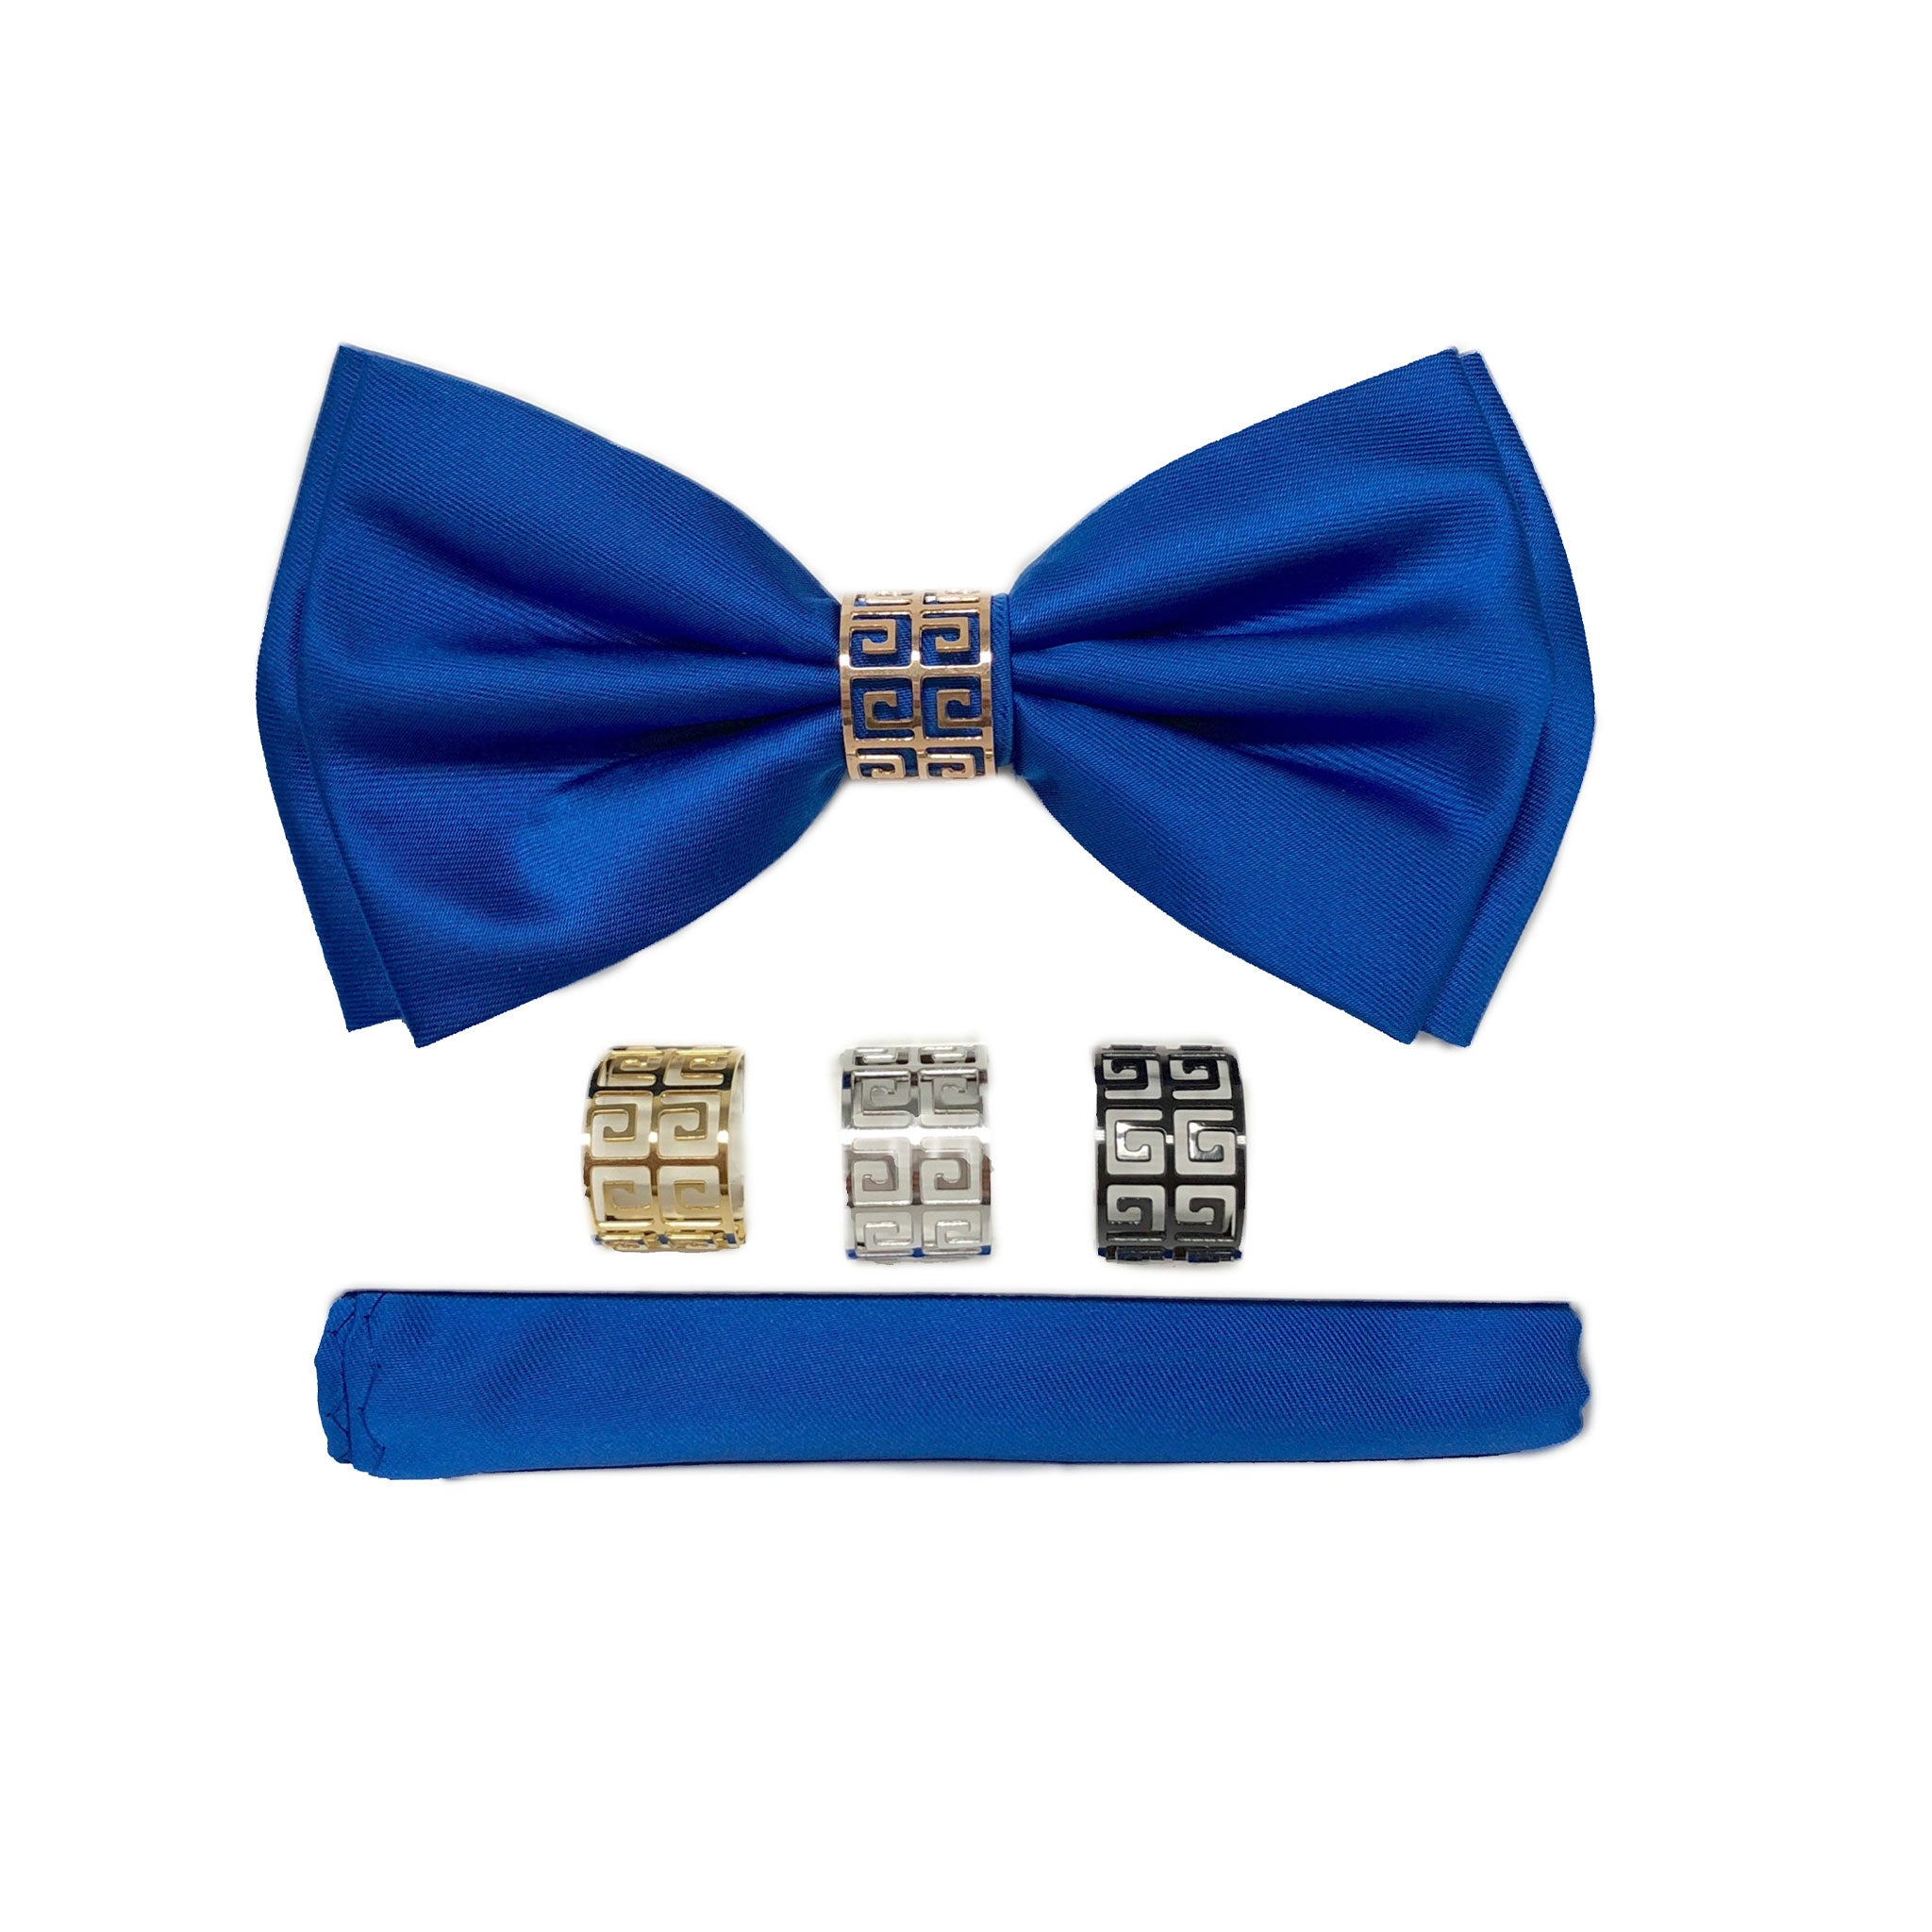 BQ ROYAL BLUE BOWTIE SET